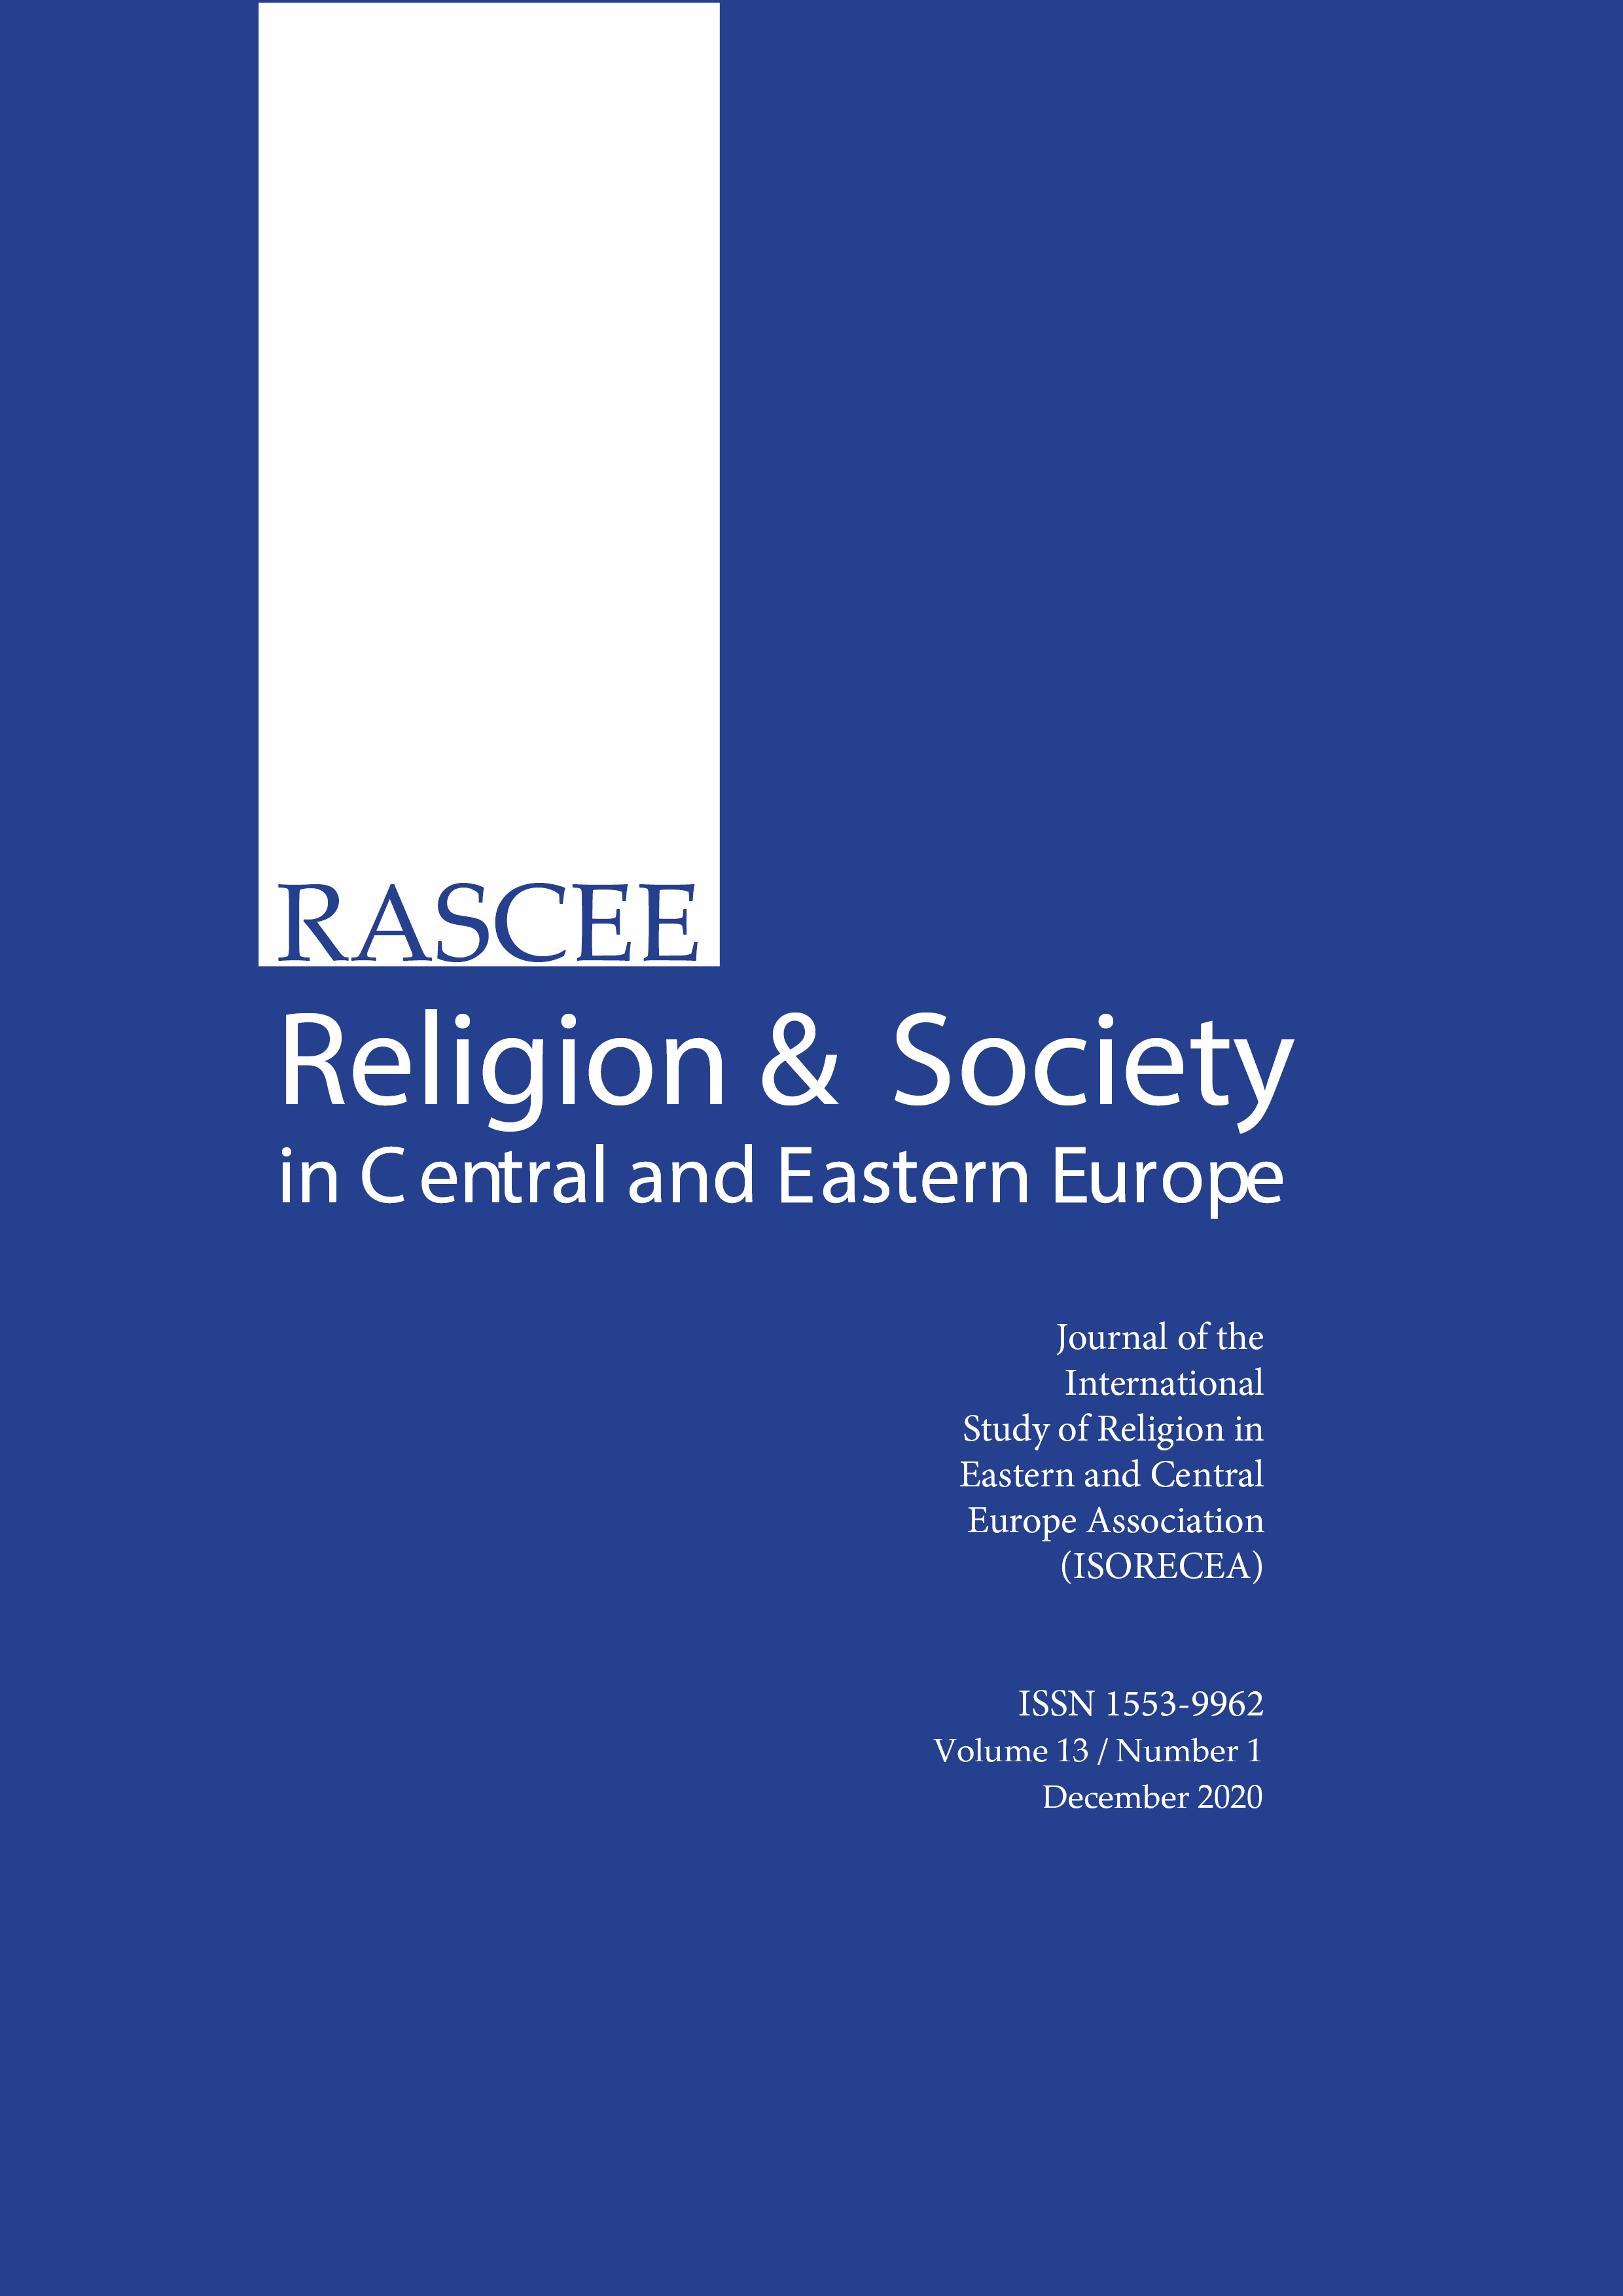 View Vol. 13 No. 1 (2020): Religion and Society in Central and Eastern Europe